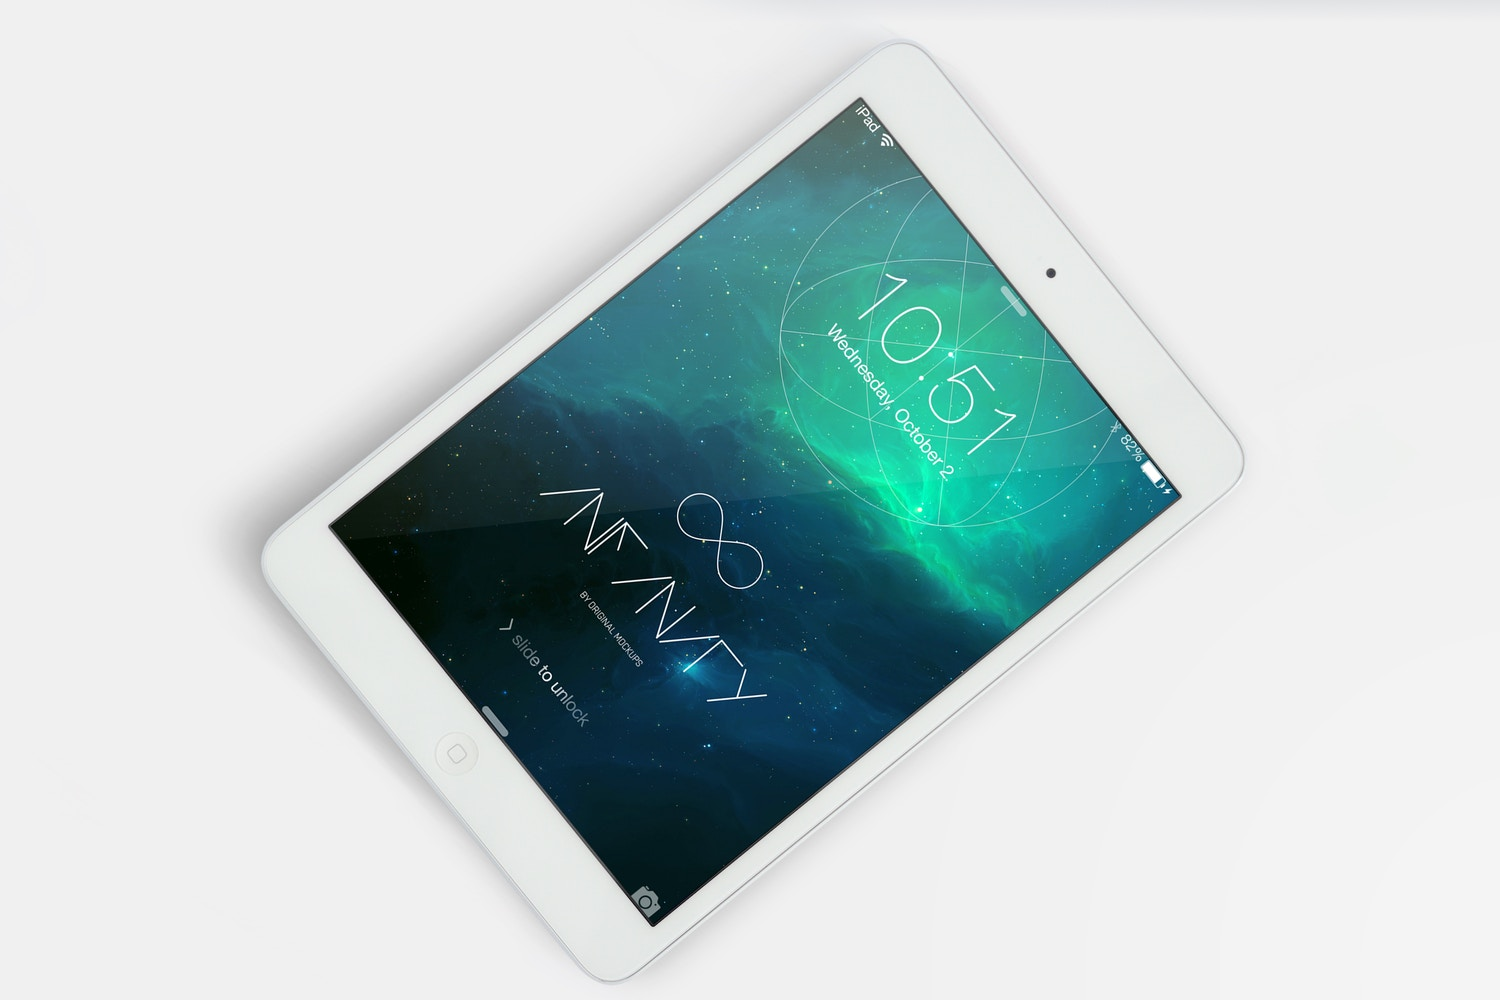 Ipad Mini Mockup 1 by Original Mockups on Original Mockups